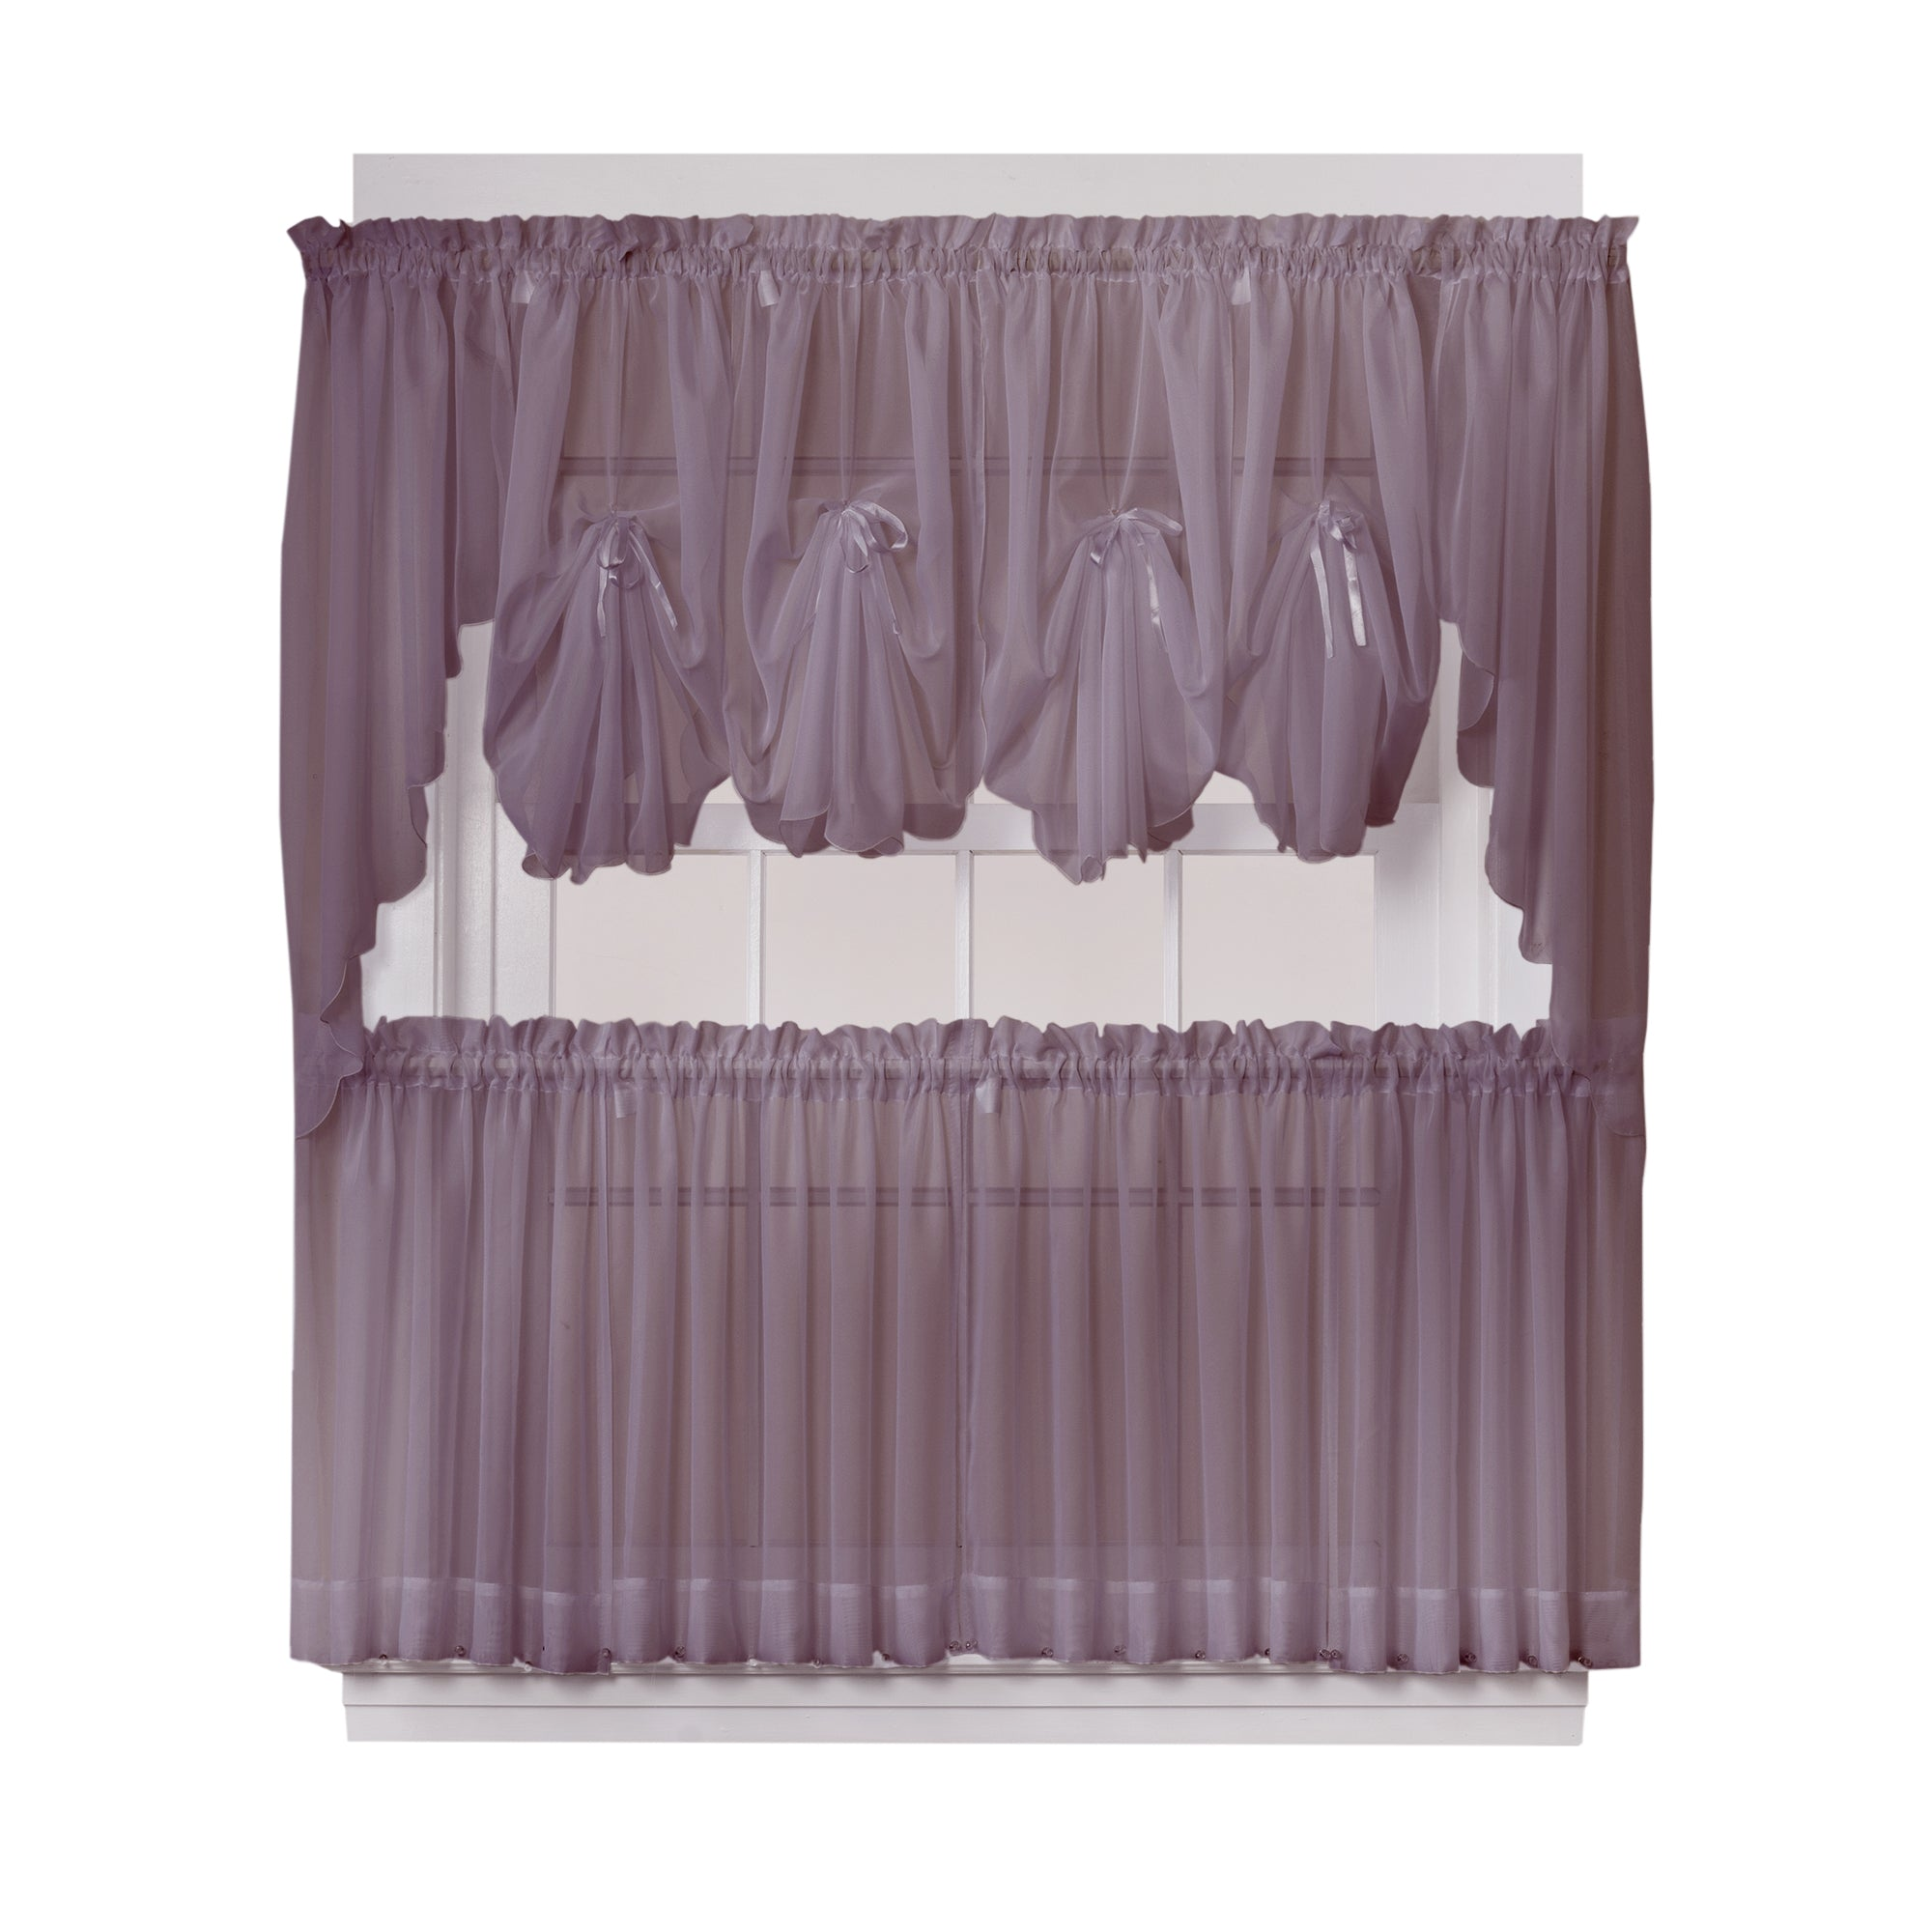 Emelia Sheer Rod Pocket Fan Swag - 030x040 Amethyst C30622- Marburn Curtains